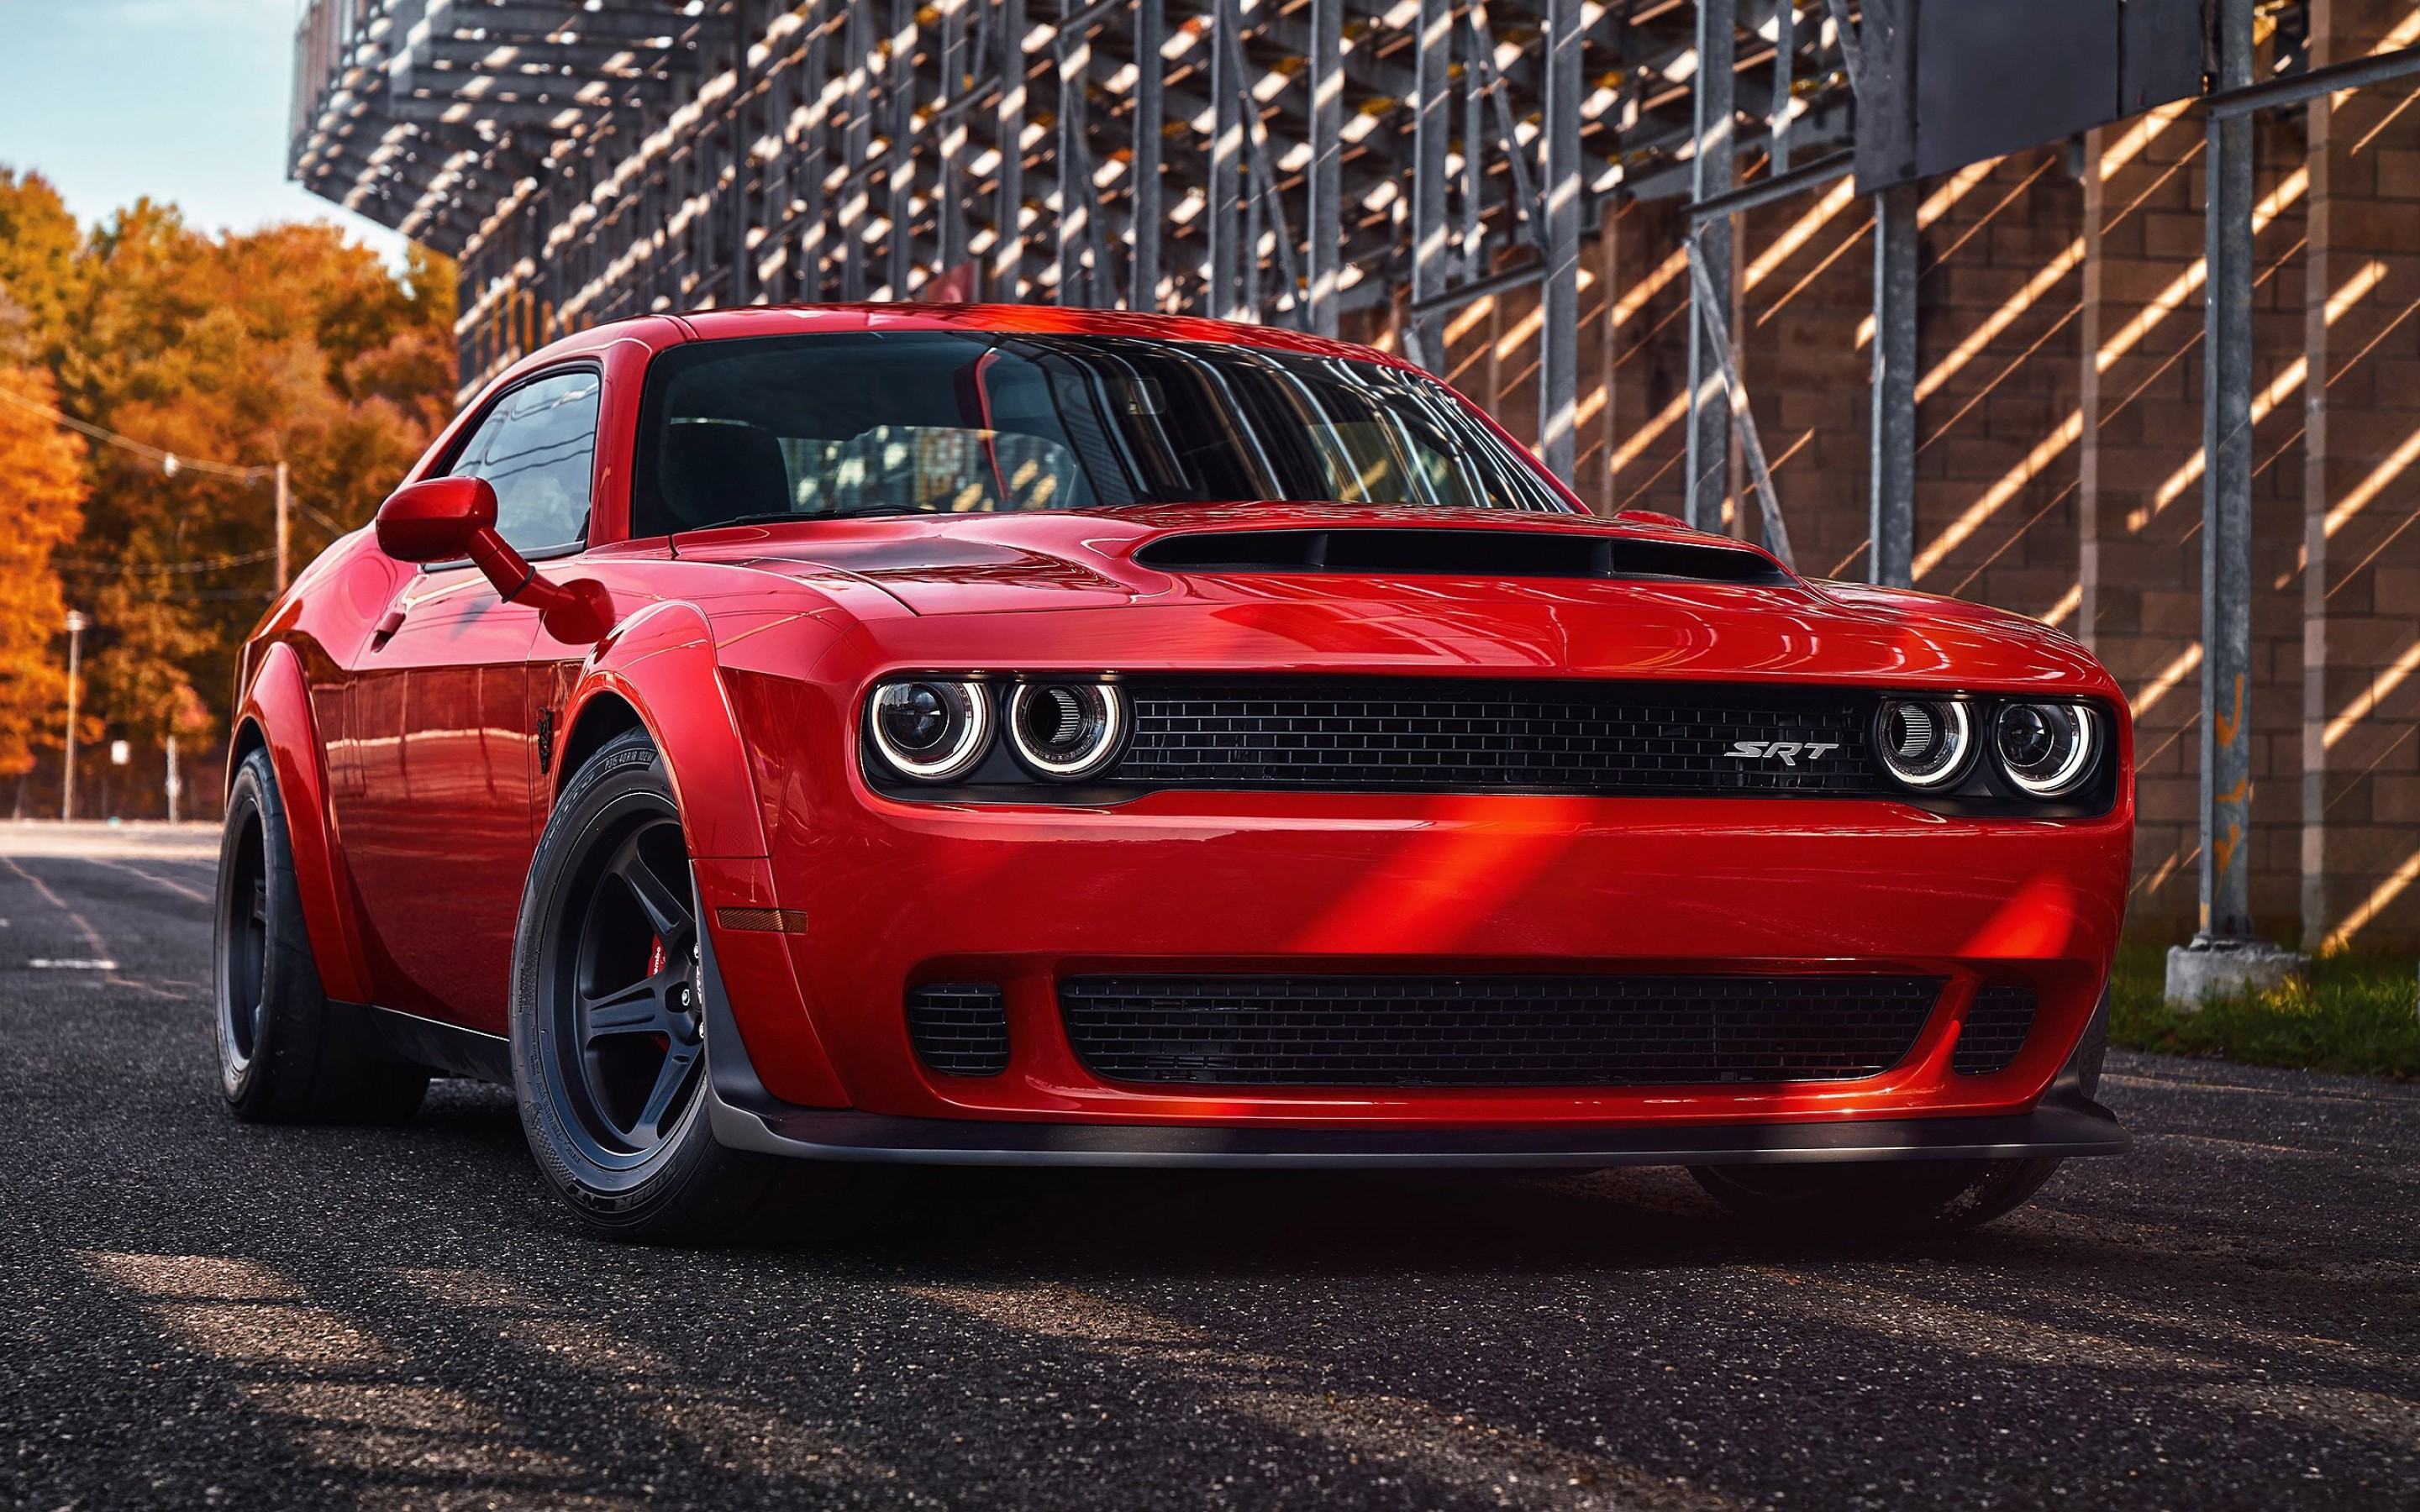 38 Best 2020 Dodge Challenger Hellcat Research New